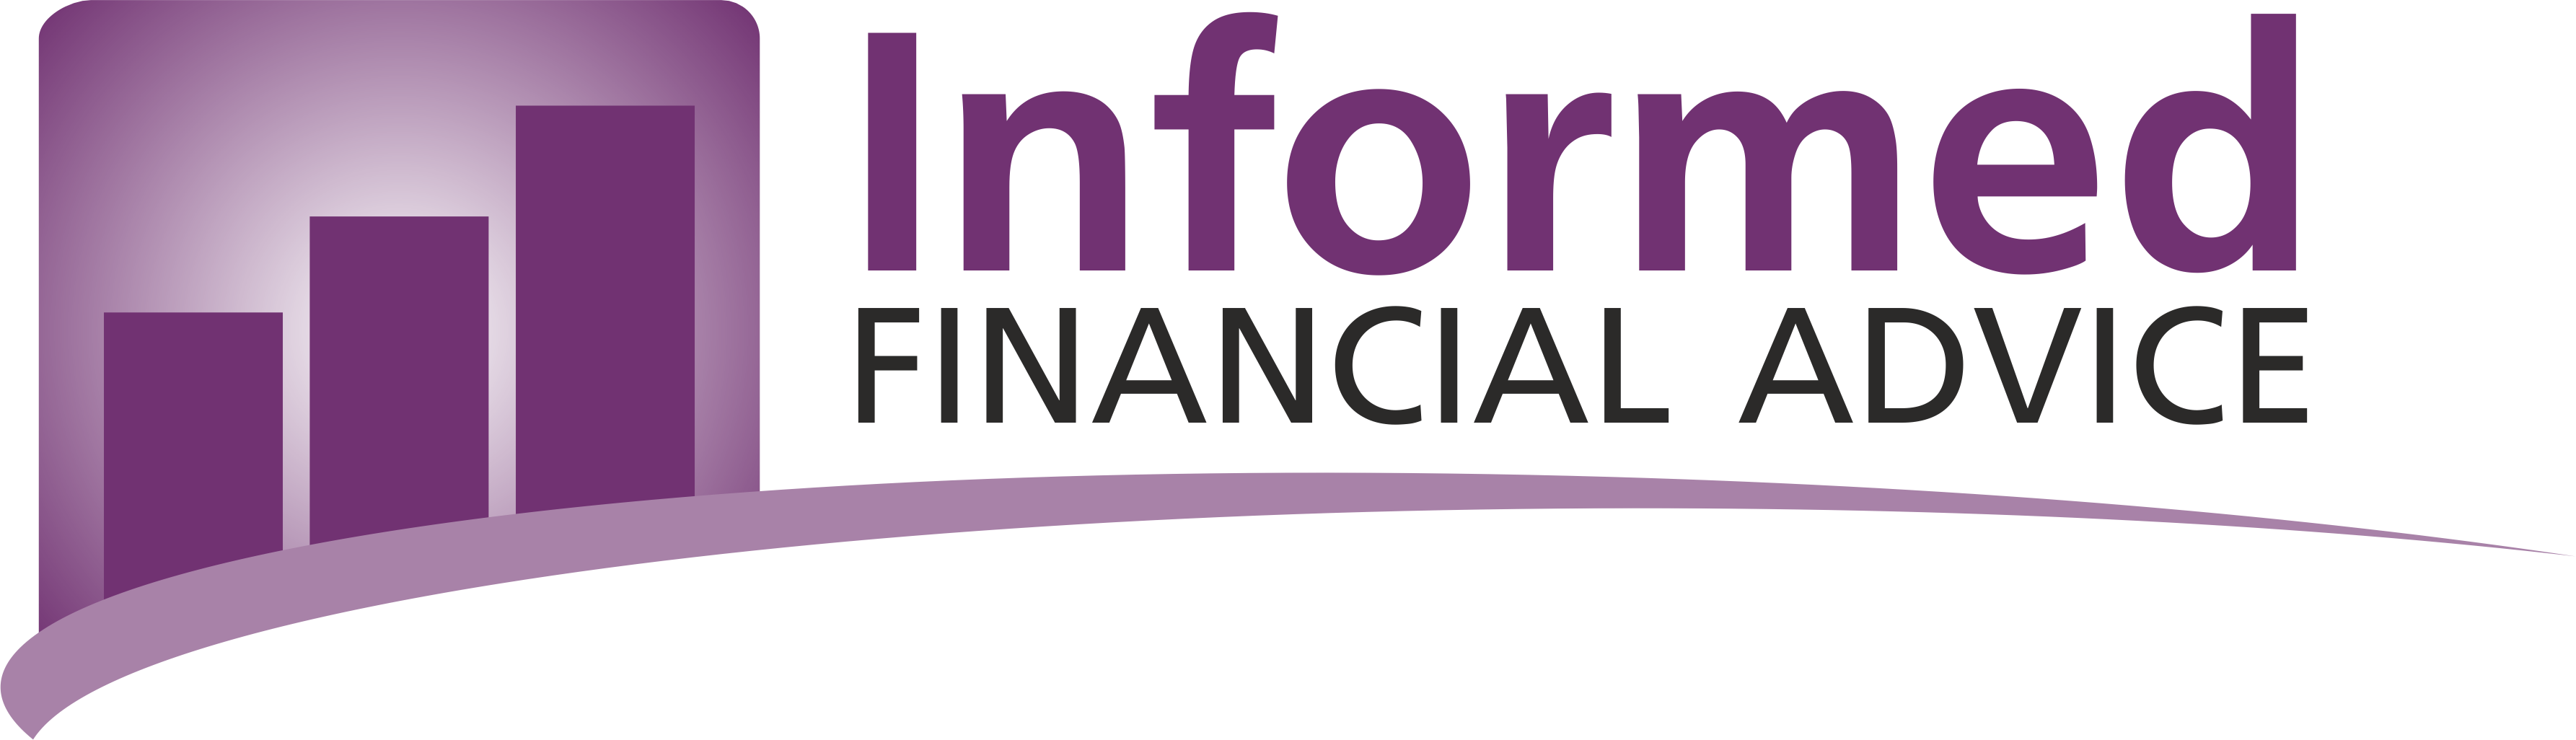 Informed Financial Advice Ltd - company logo